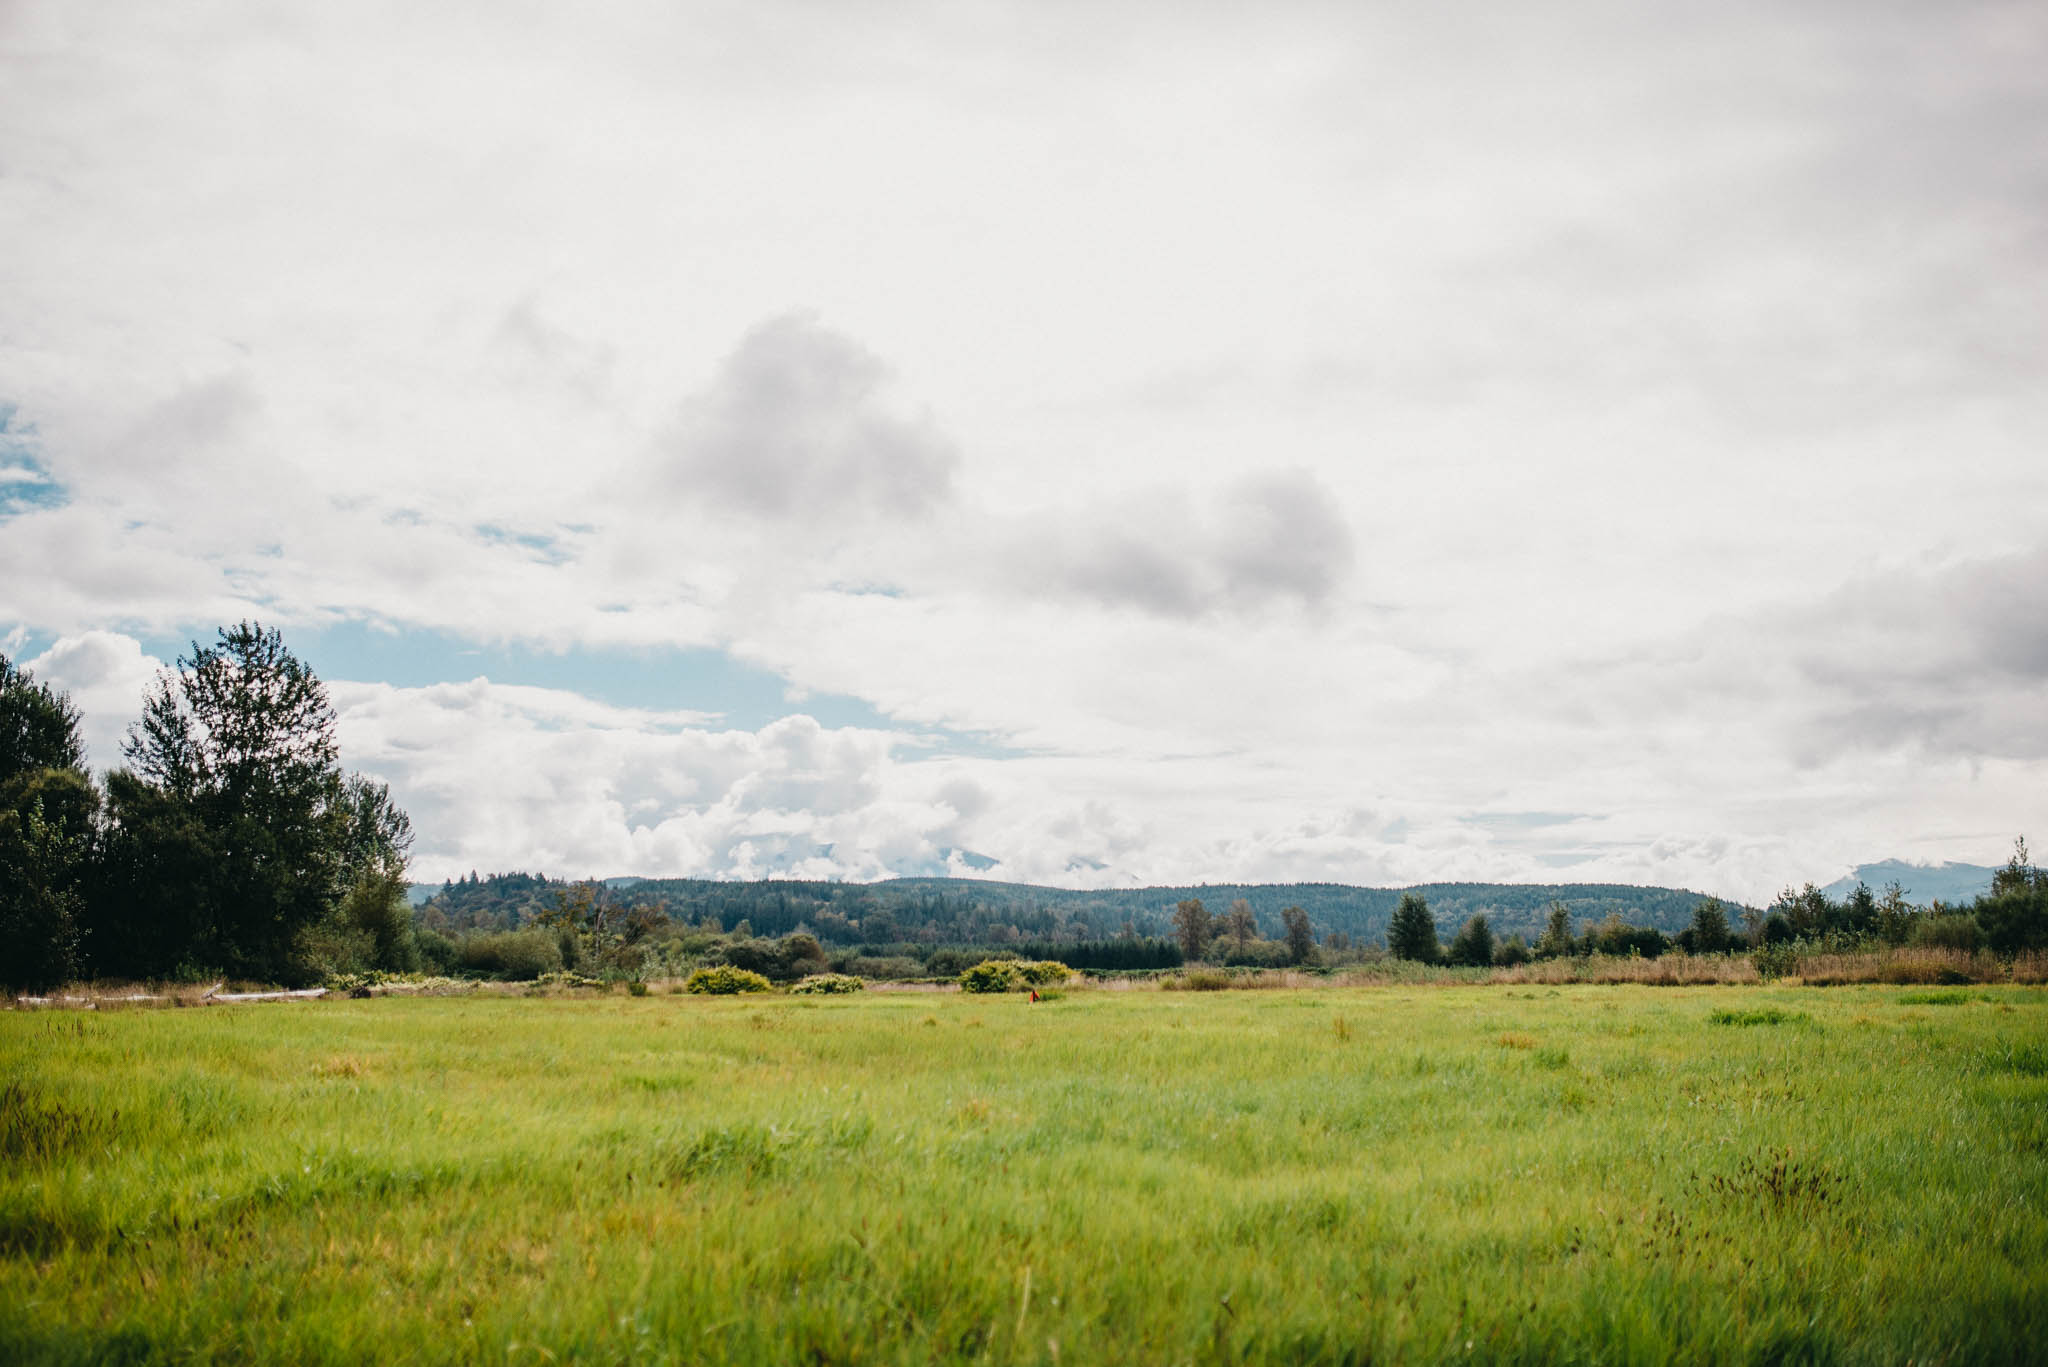 Farm Field in Western Washington